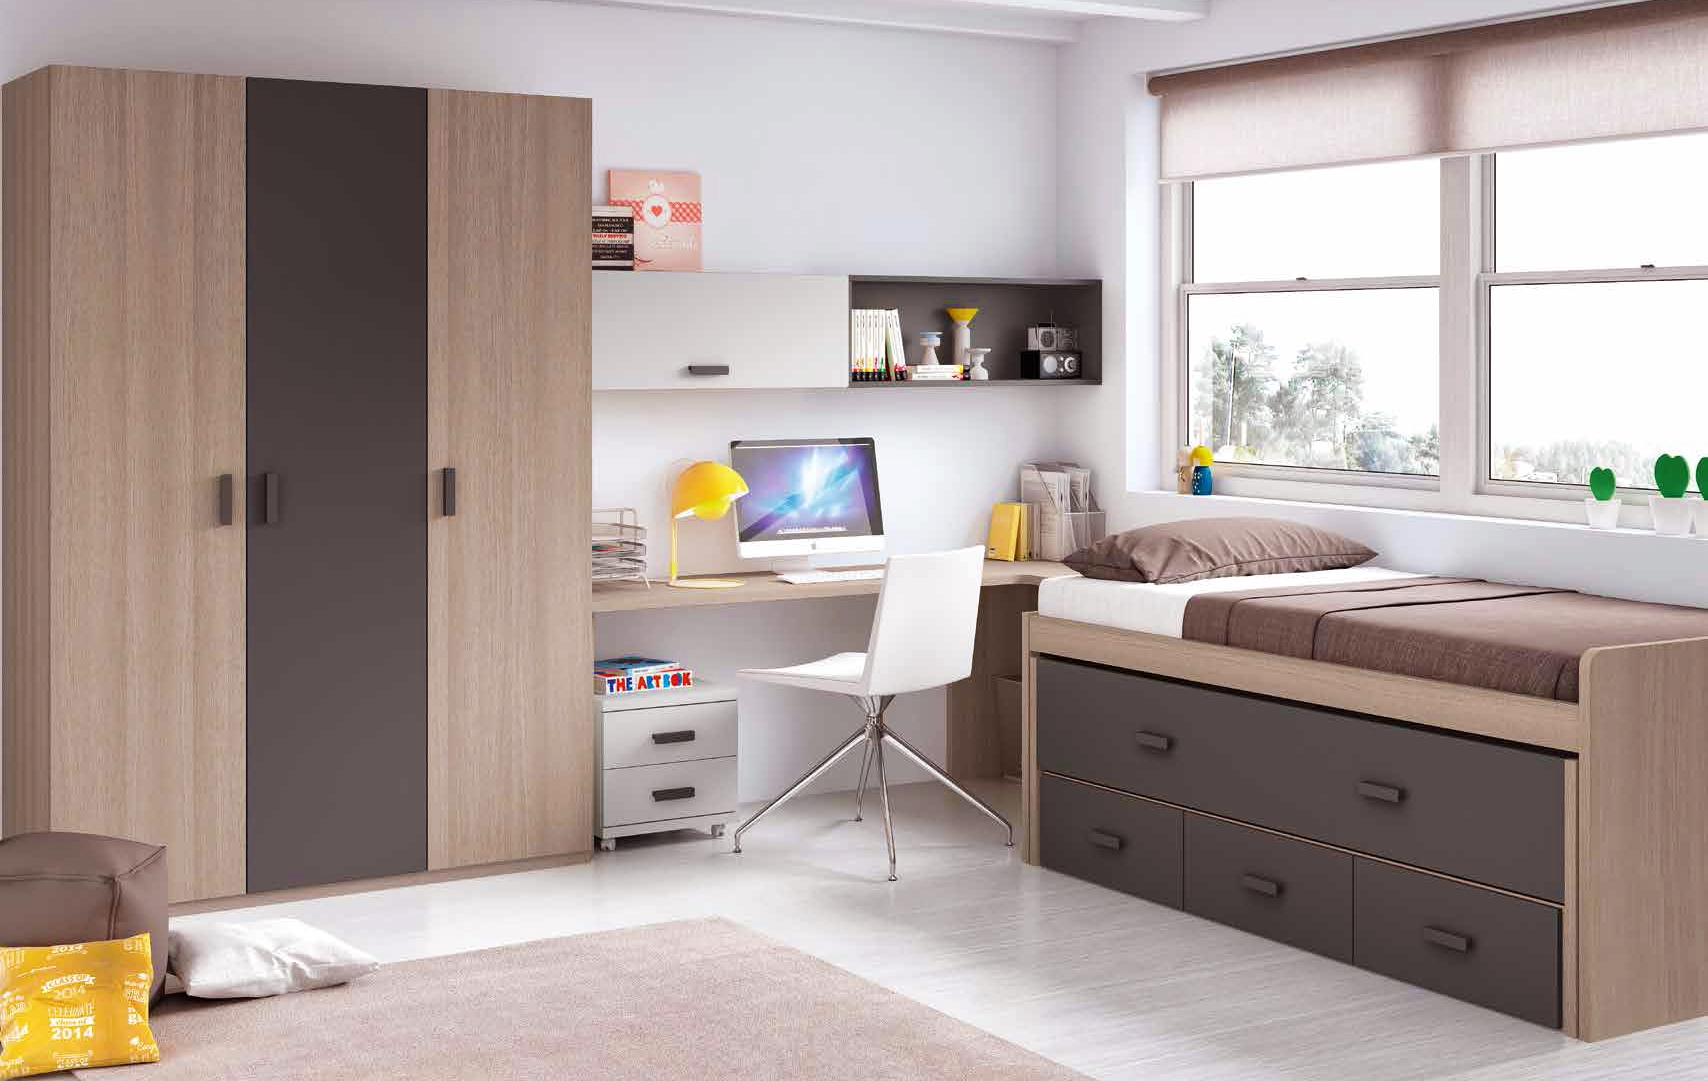 chambre enfant garcon avec lit sur lev bureau glicerio so nuit. Black Bedroom Furniture Sets. Home Design Ideas